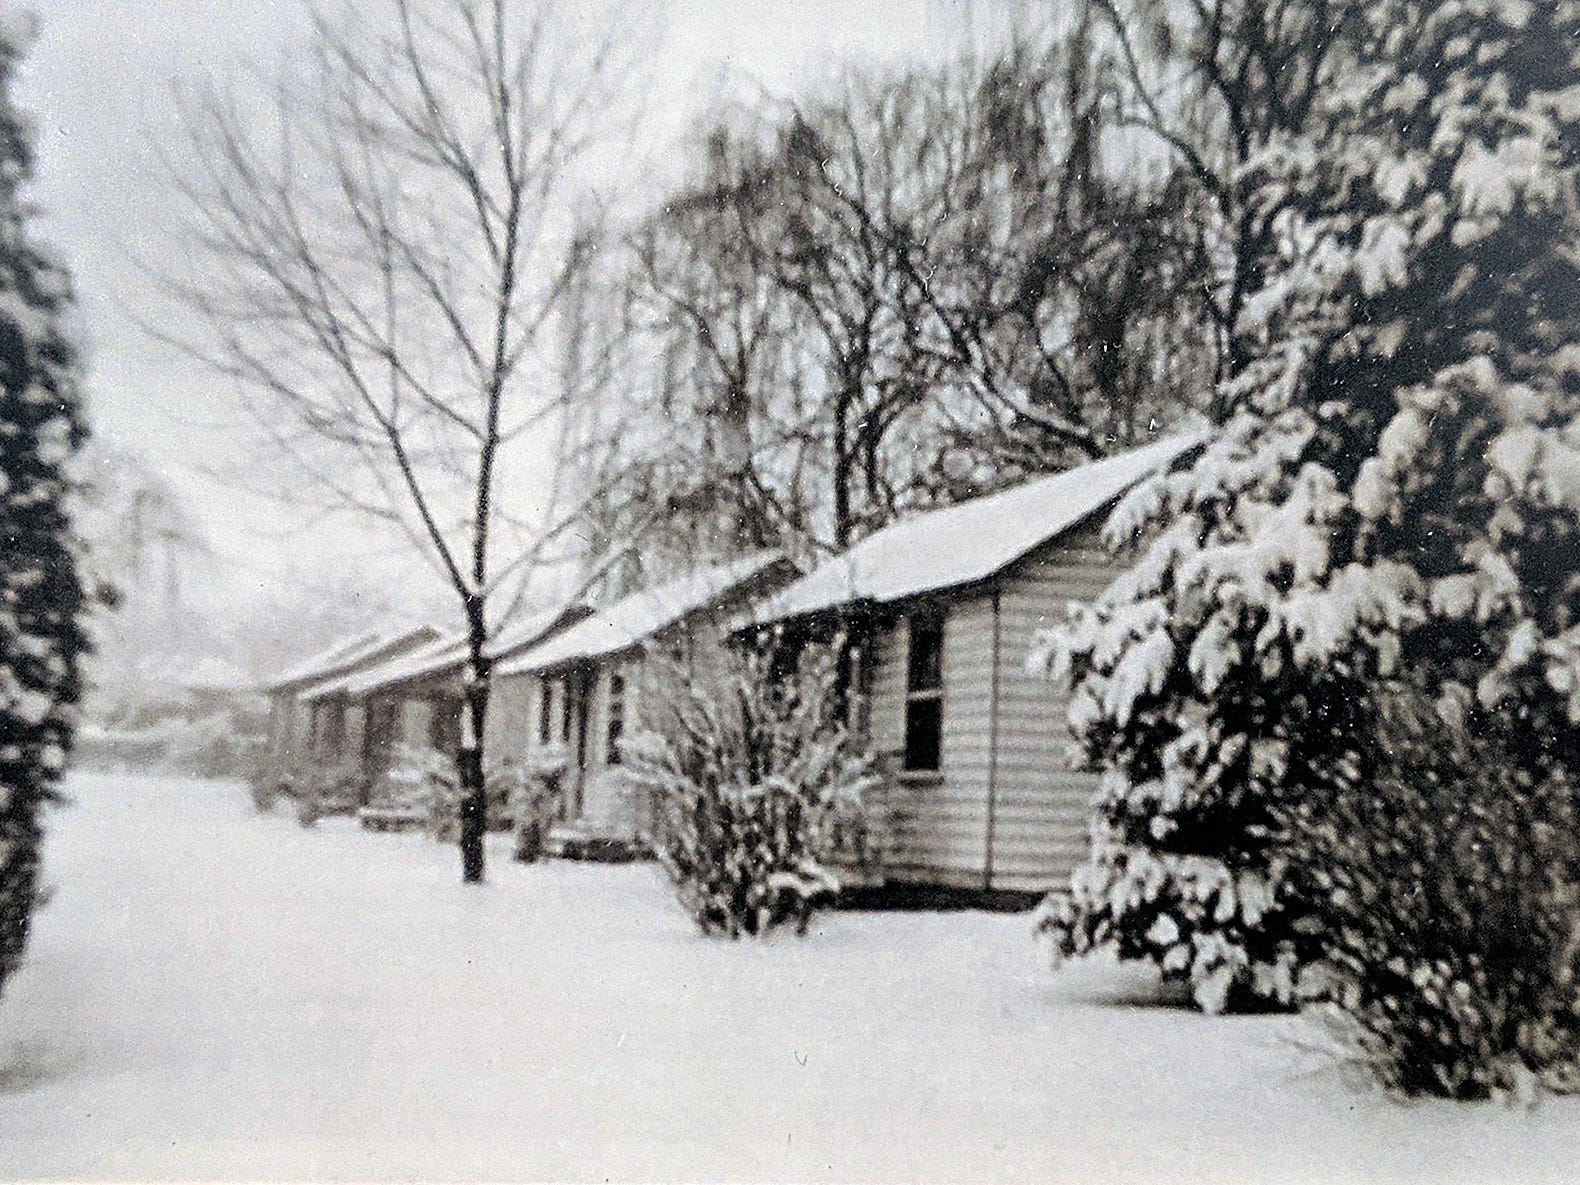 The Smith cottages, which were behind the store, are shown as they looked in 1948.